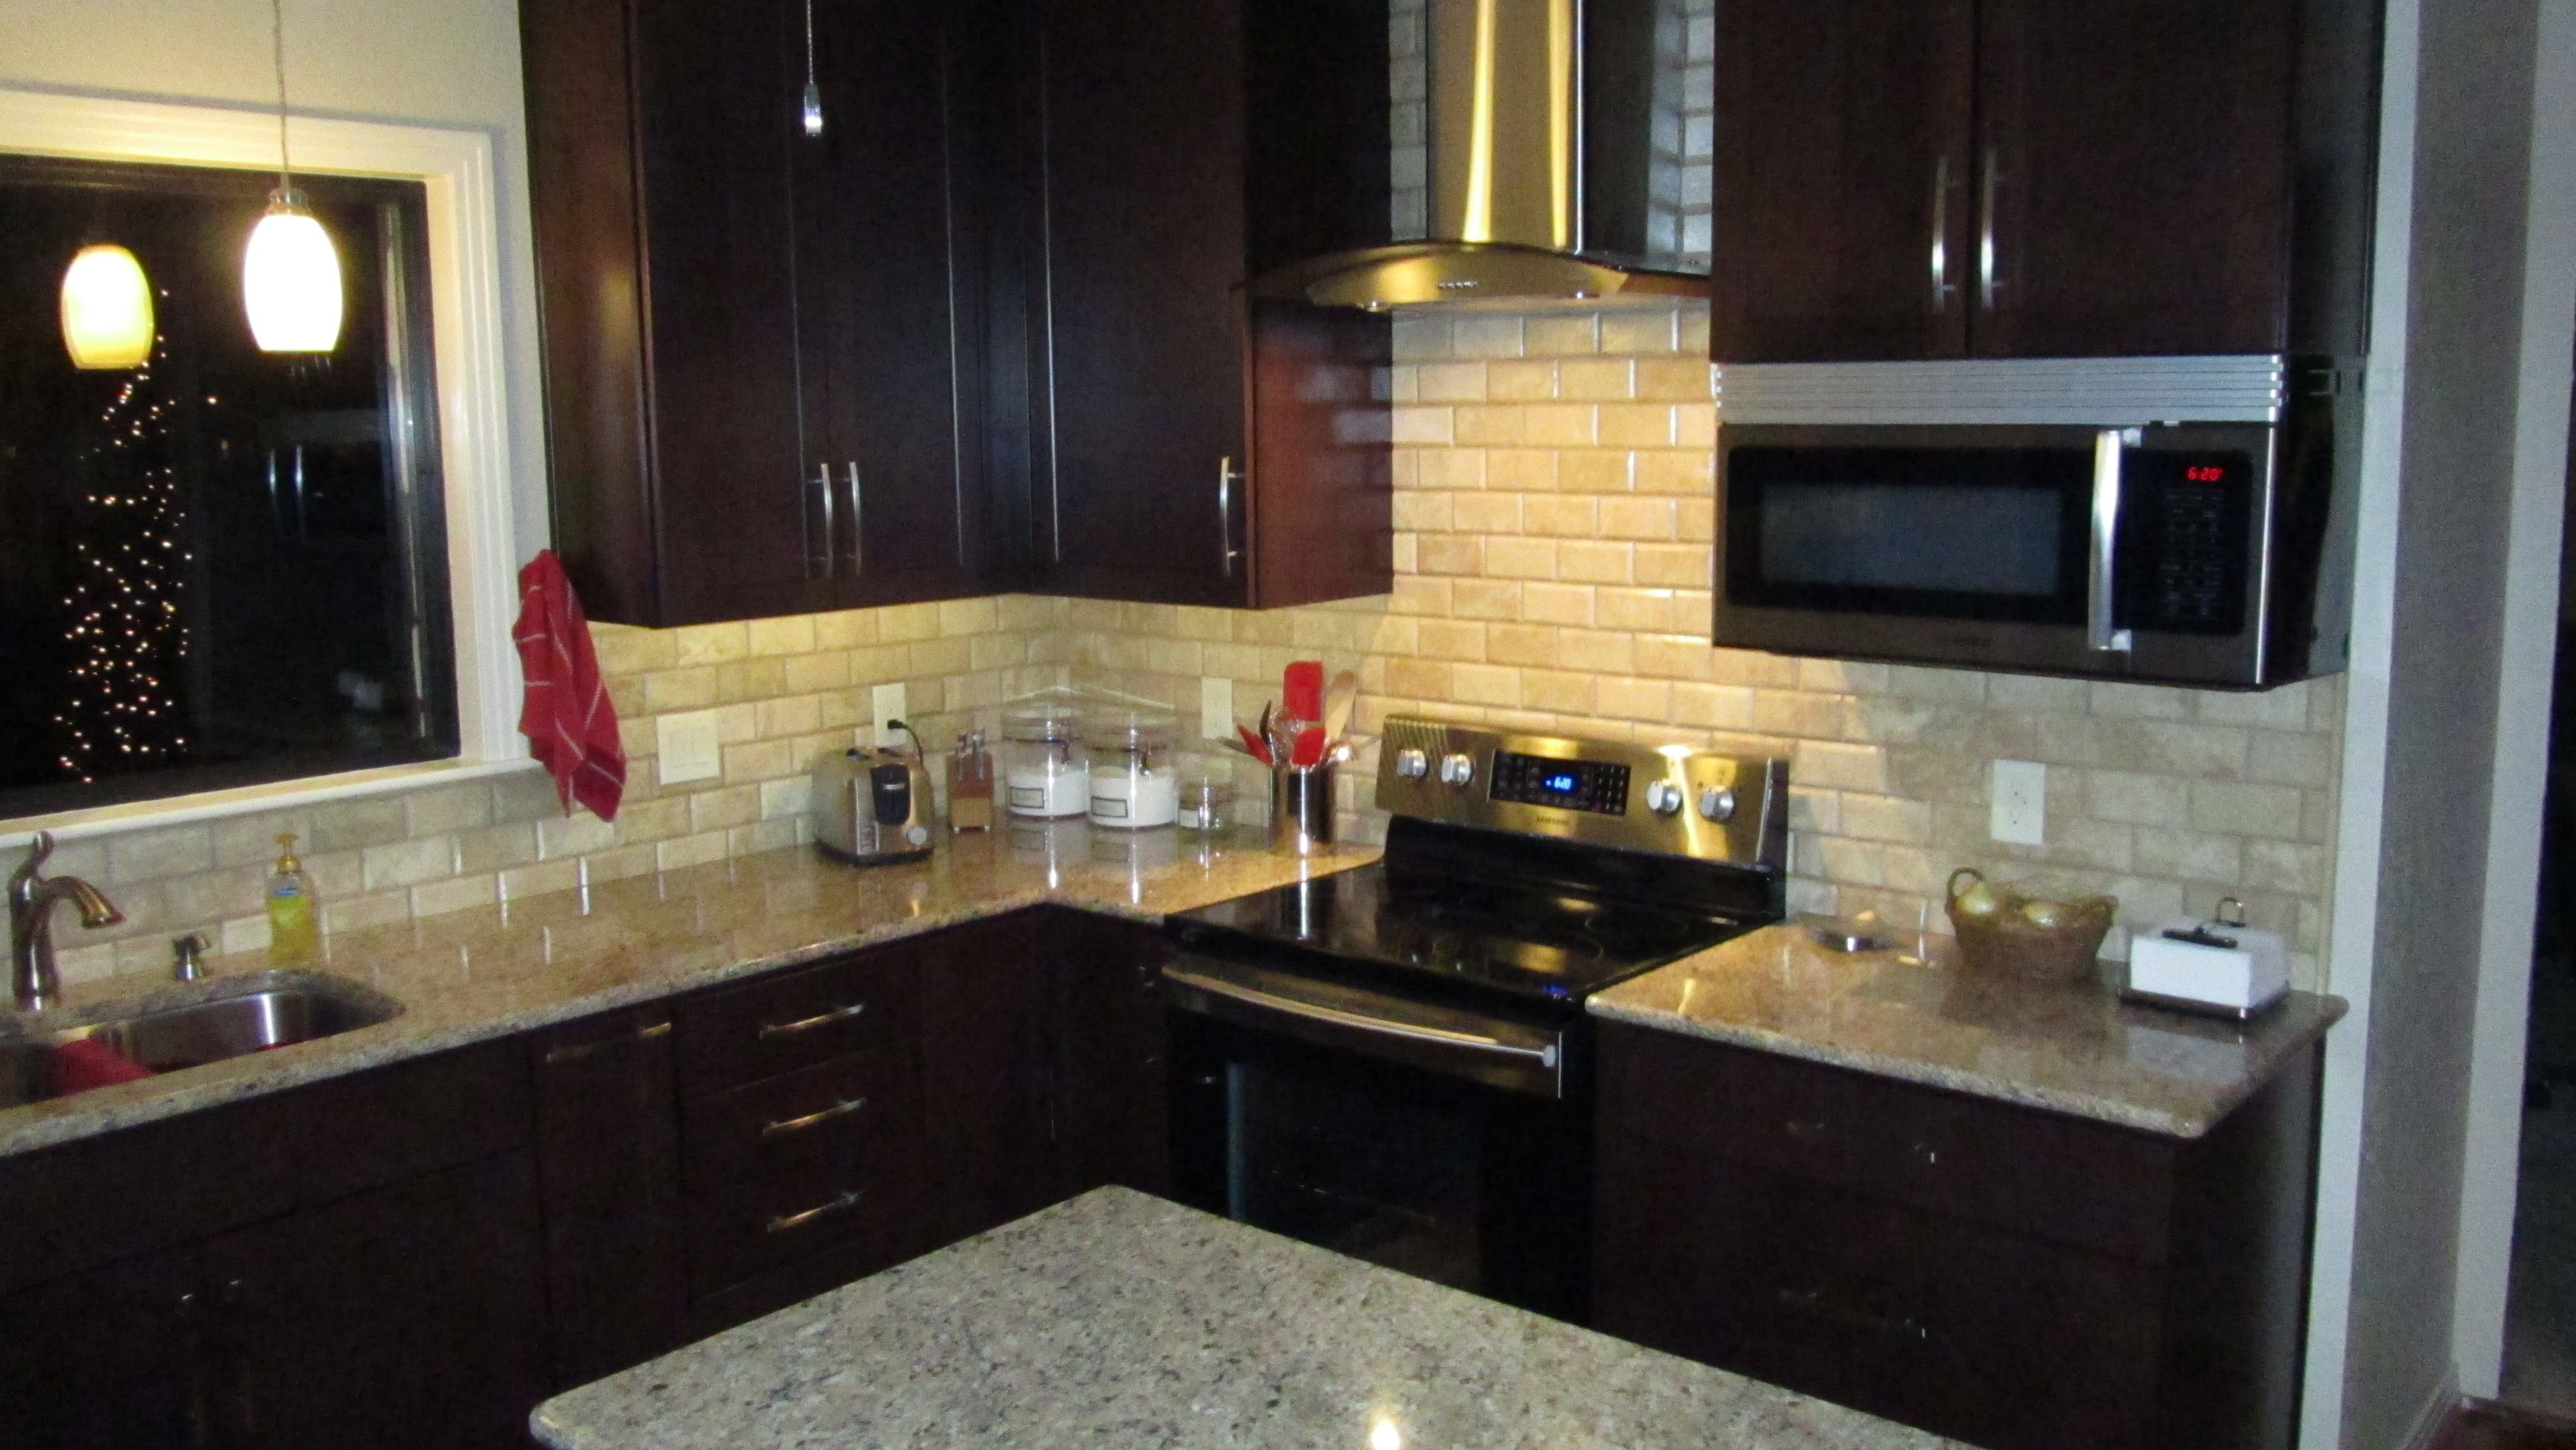 Lowes espresso kitchen cabinets - The Cabinets Are Shenandoah Breckenridge Cherry Bordeaux The Granite Is New Venetian Gold Both